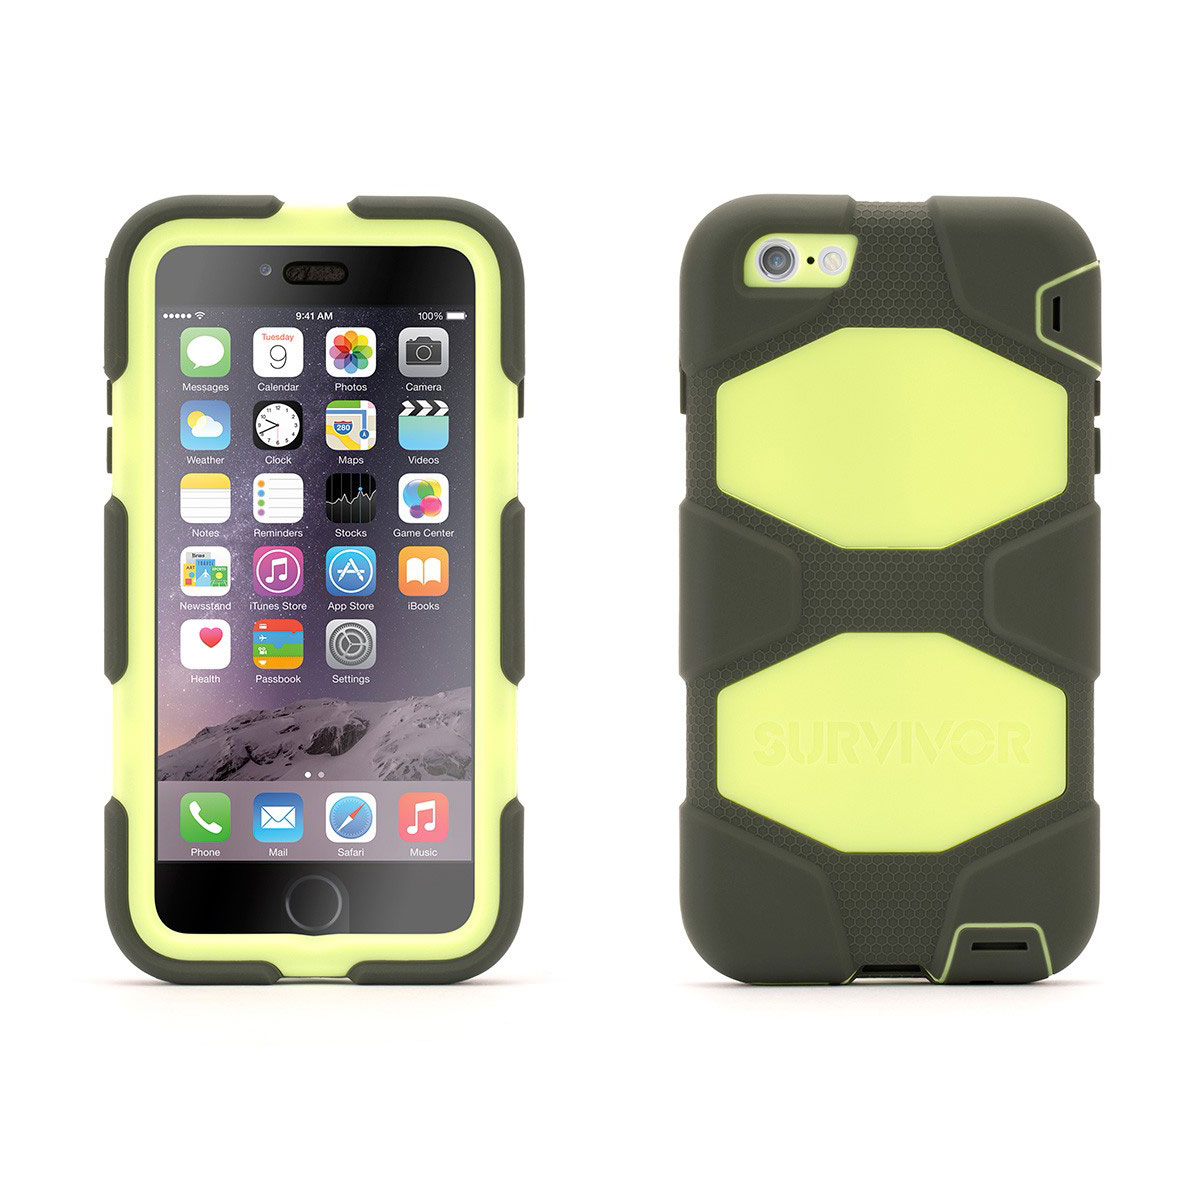 Etui téléphone Griffin Survivor All Terrain Gris/Lime Apple iPhone 6 Plus Coque ultra-résistante pour iPhone 6 Plus